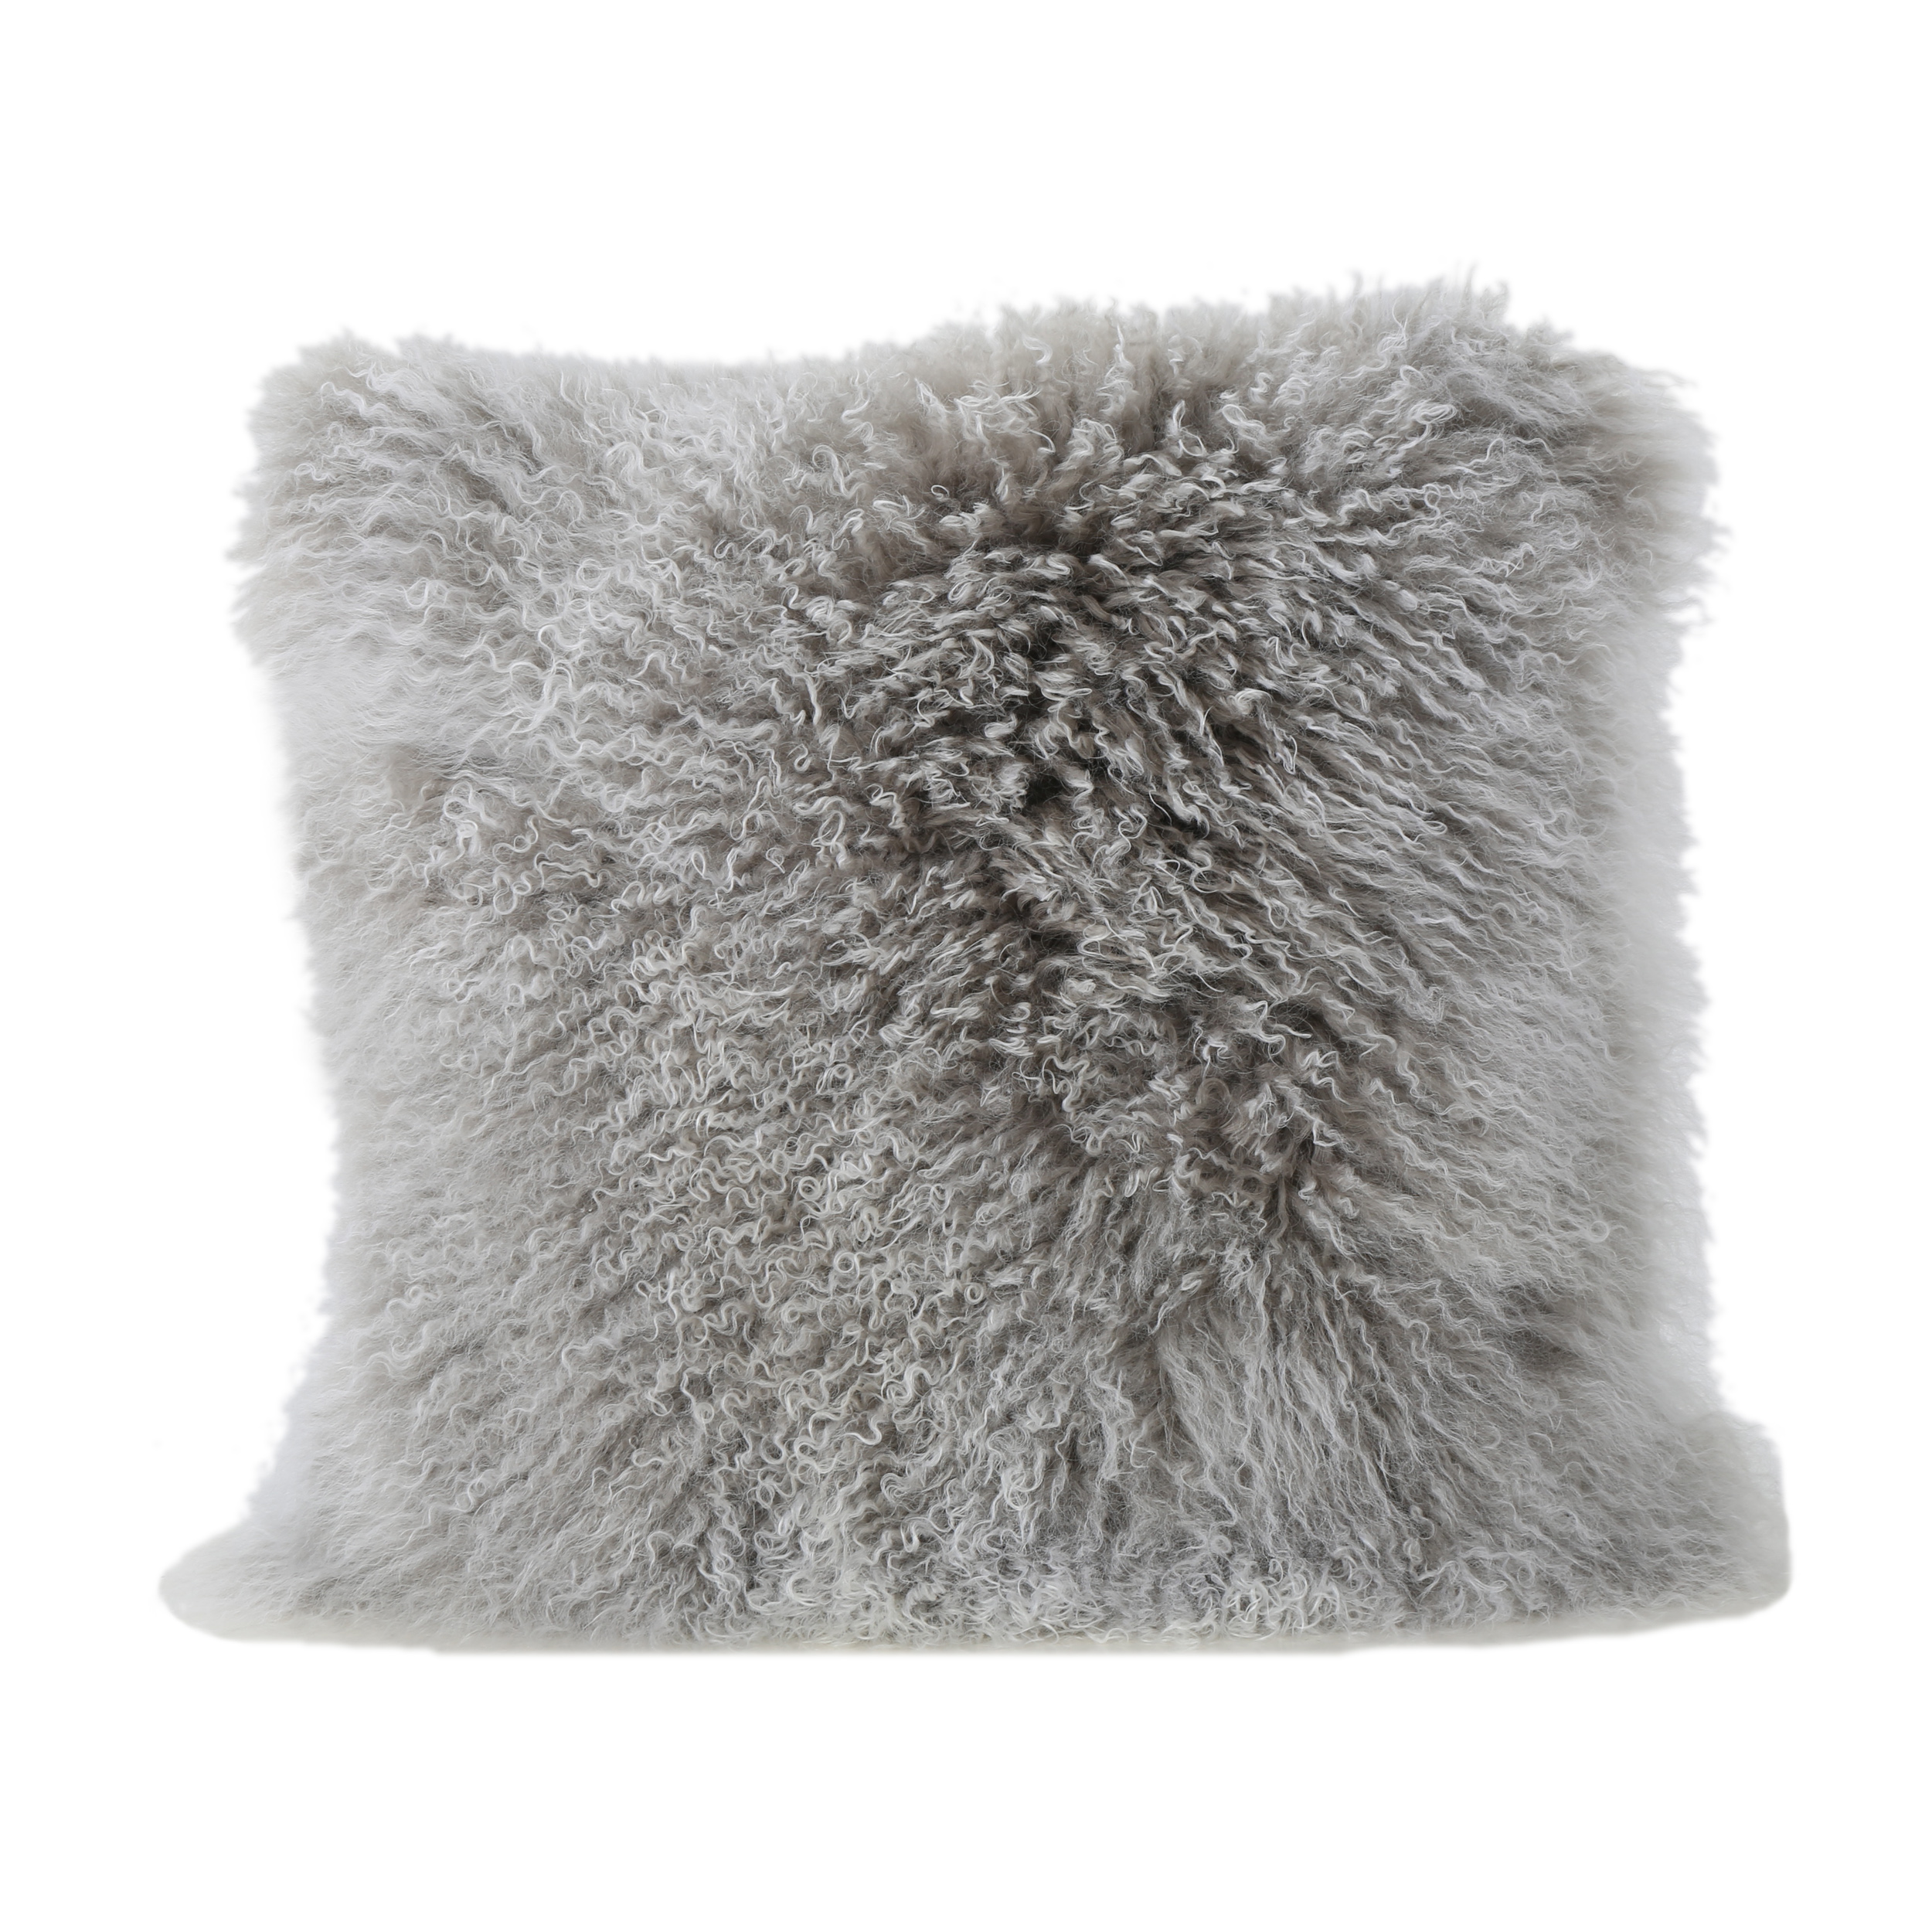 Marybelle Shaggy Lamb Fur 20 x 20 Square Pillow, Stone Grey